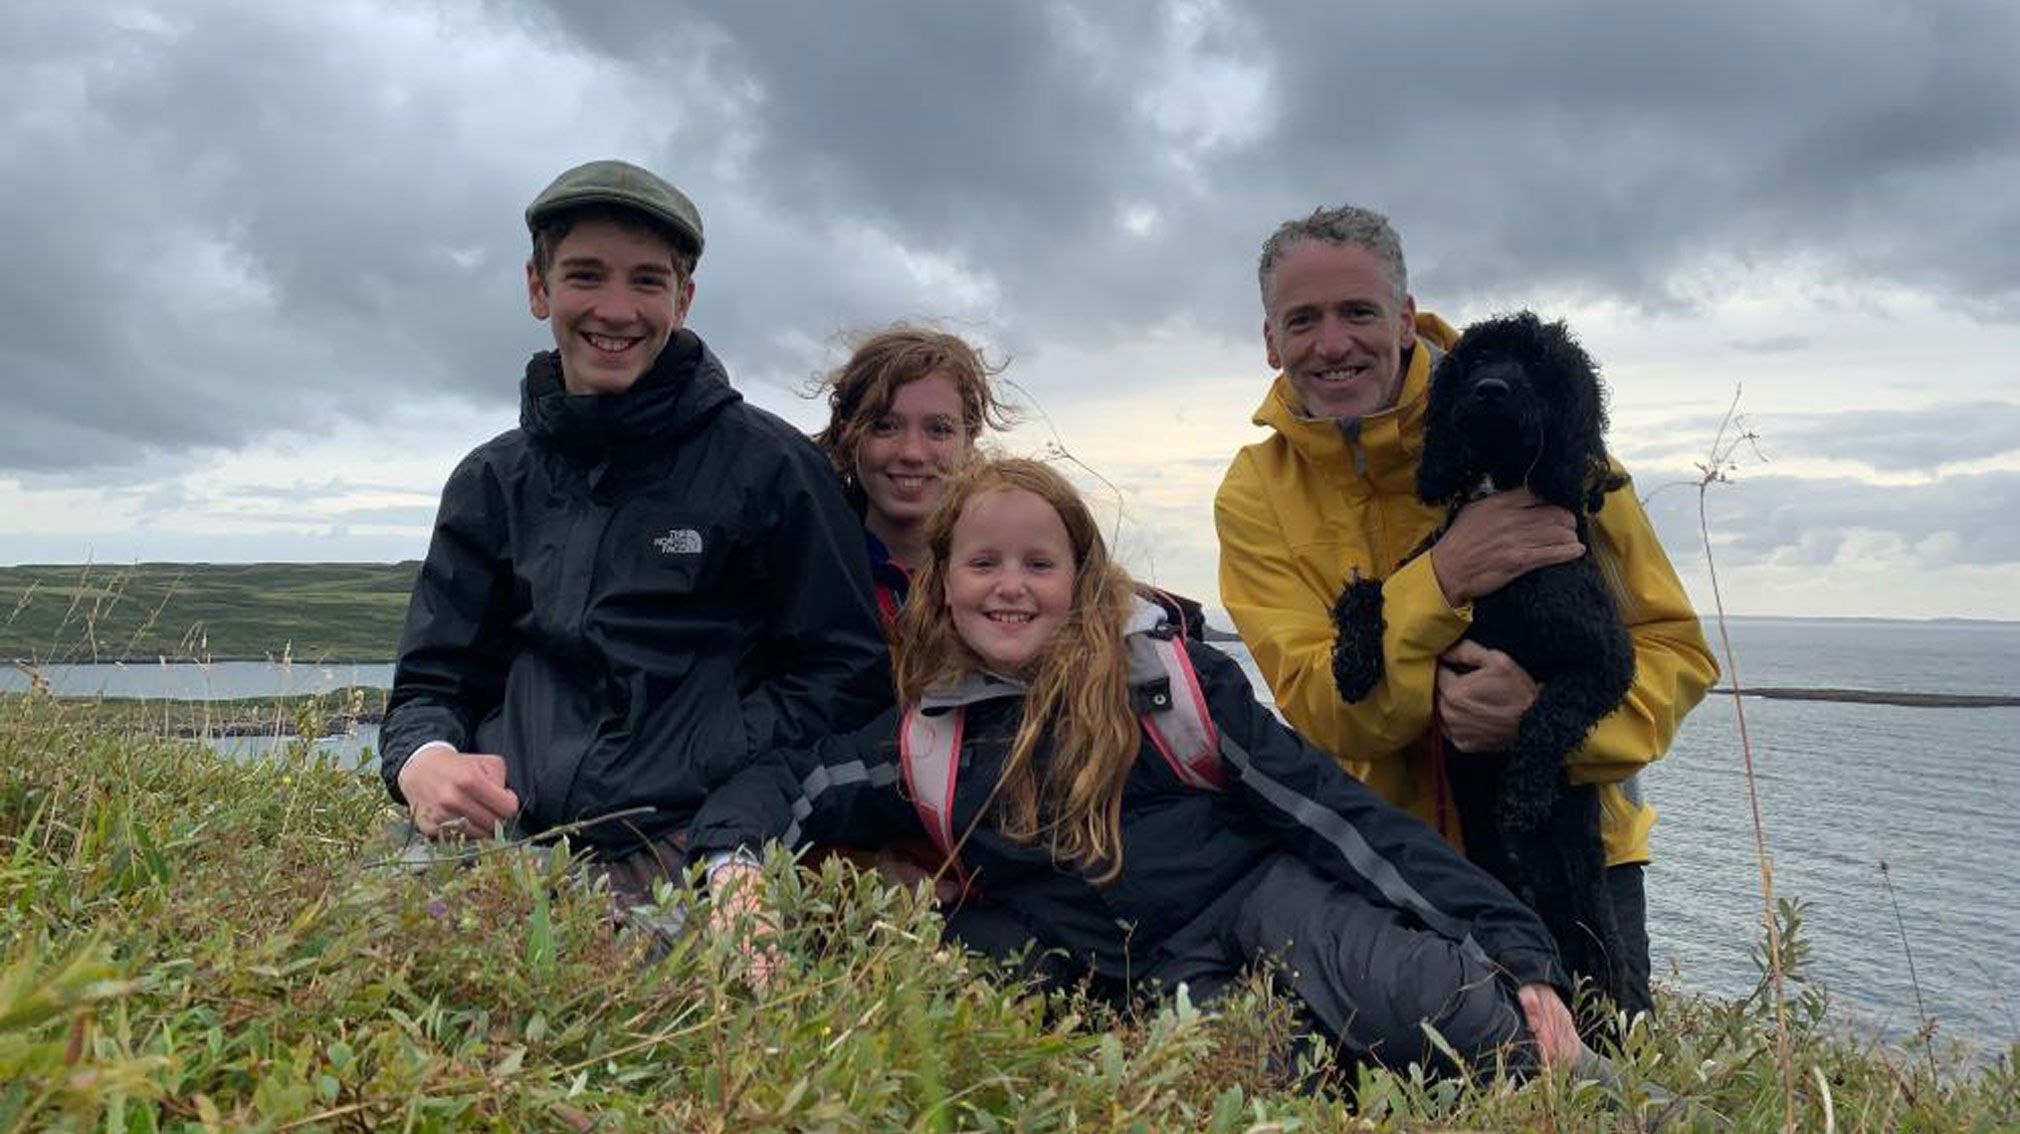 Gordon Buchanan and his family